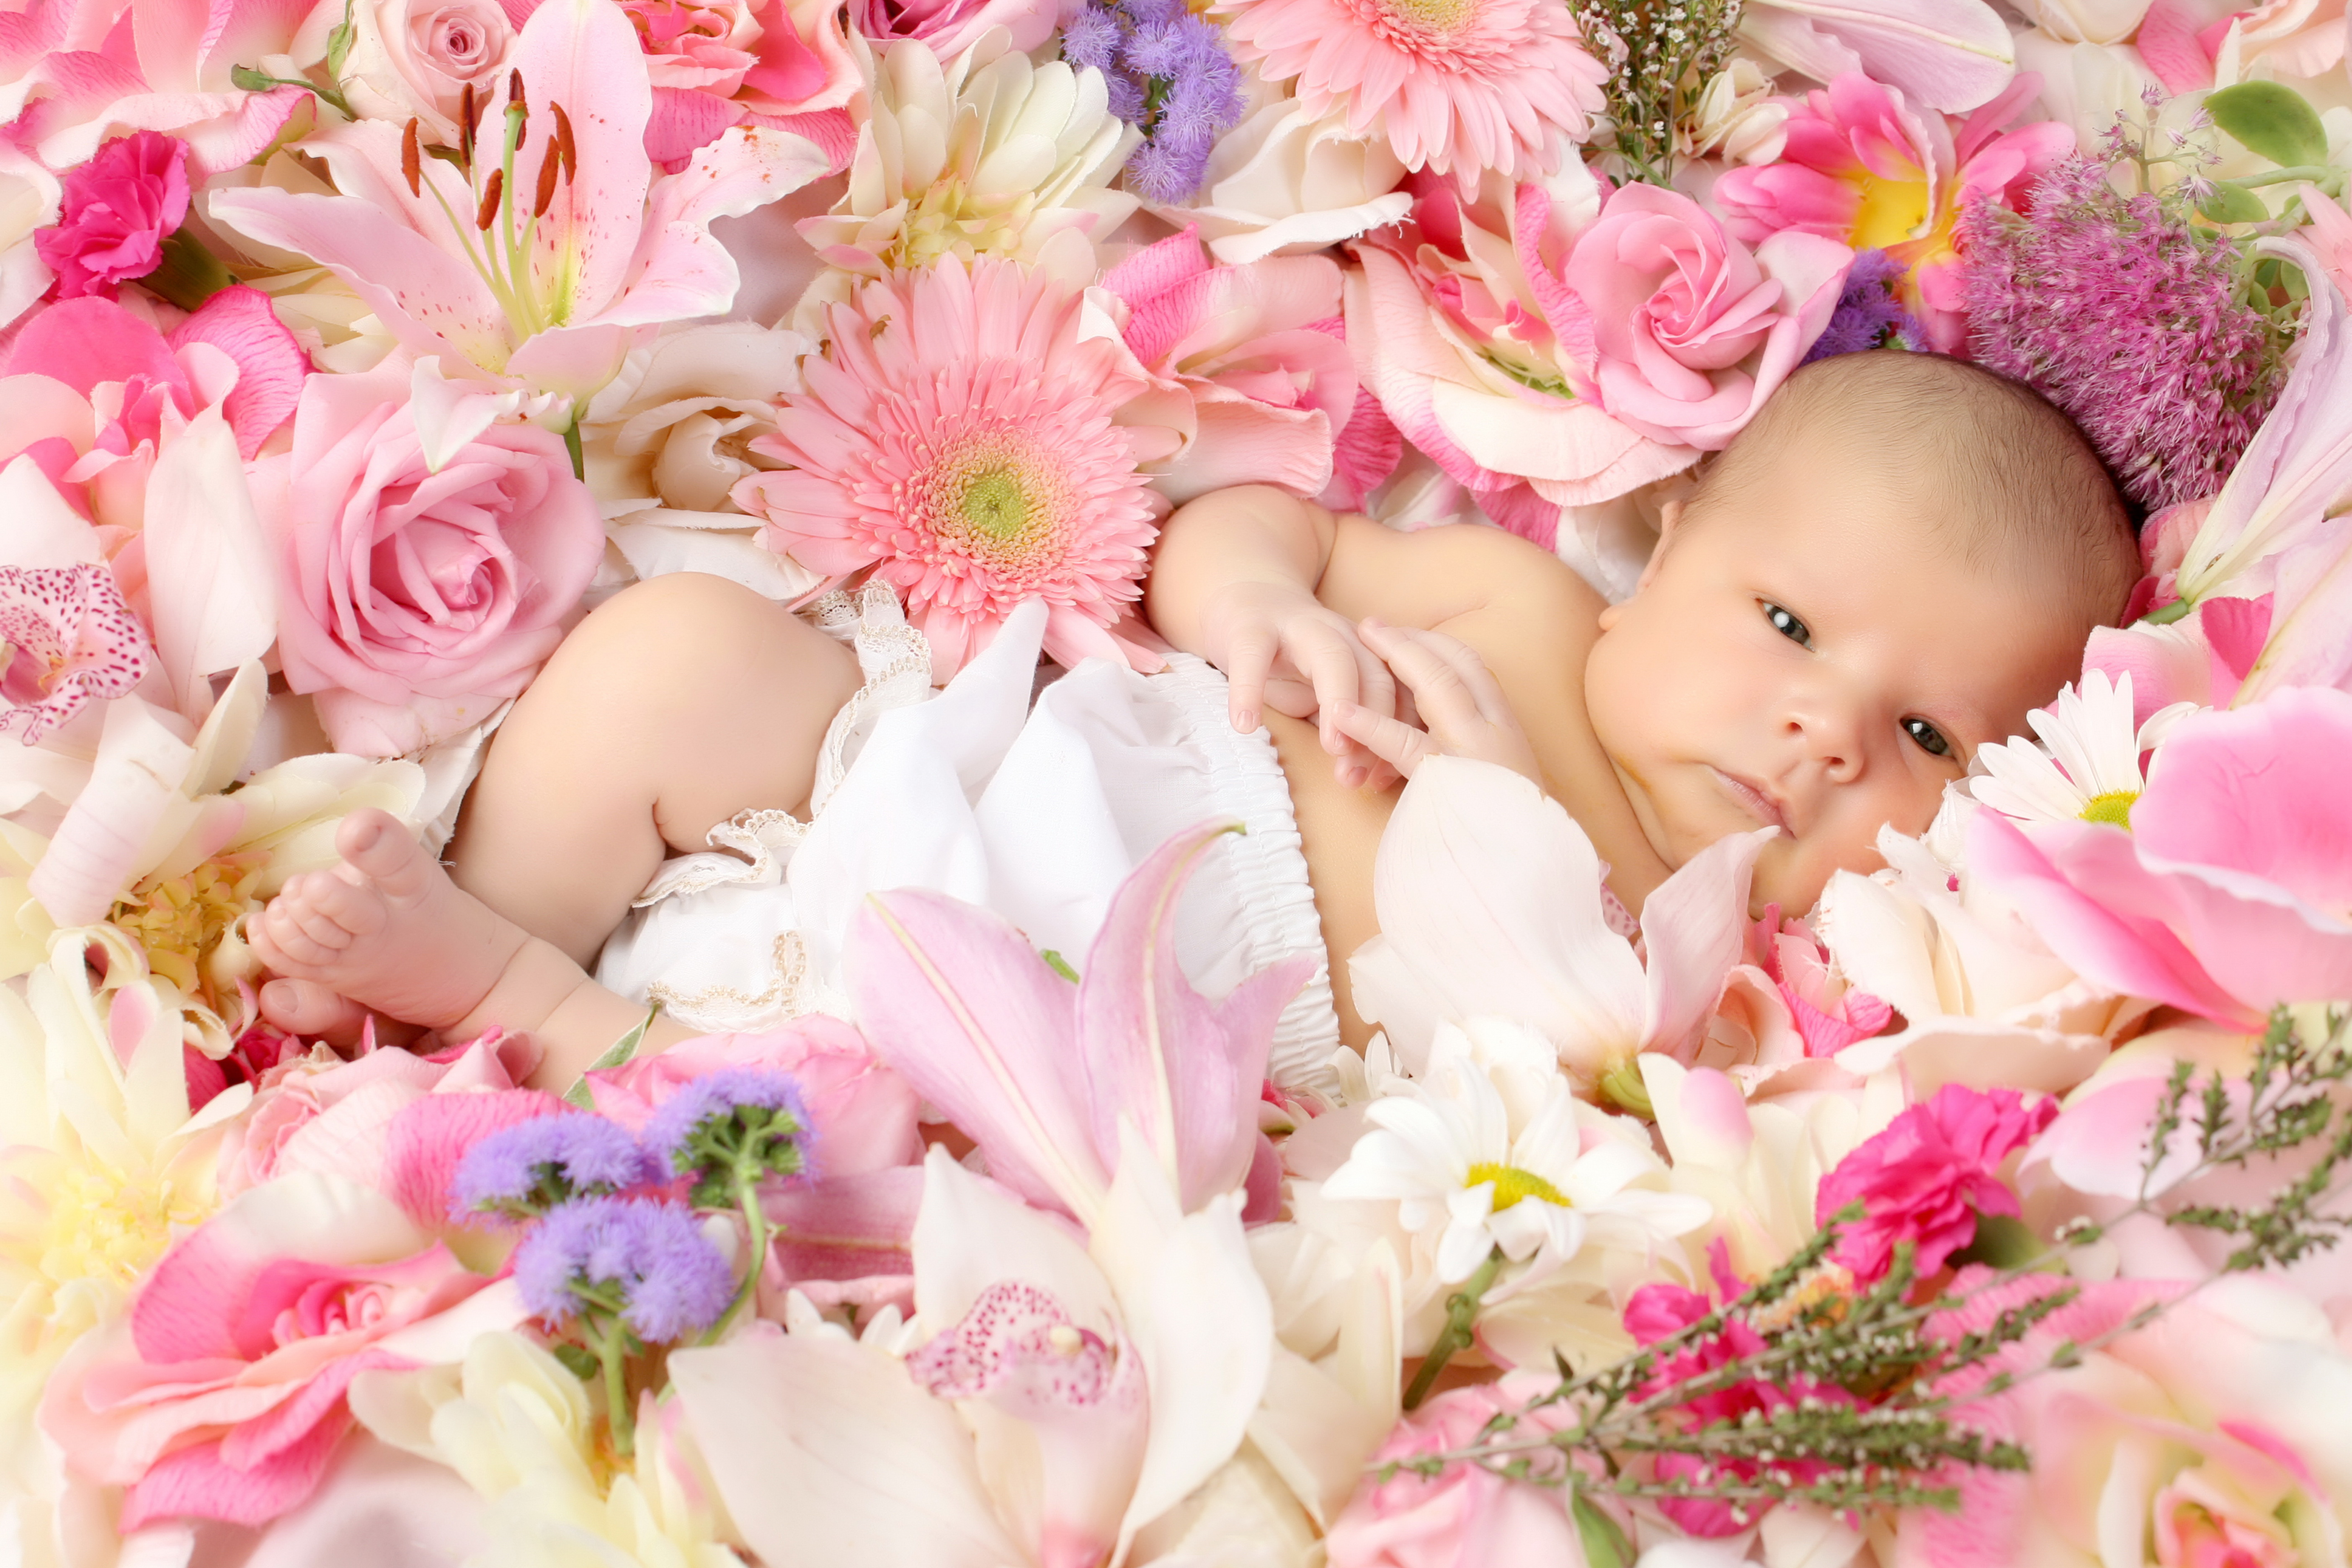 A cute baby on Flowers HD wallpaper   HD Latest Wallpapers